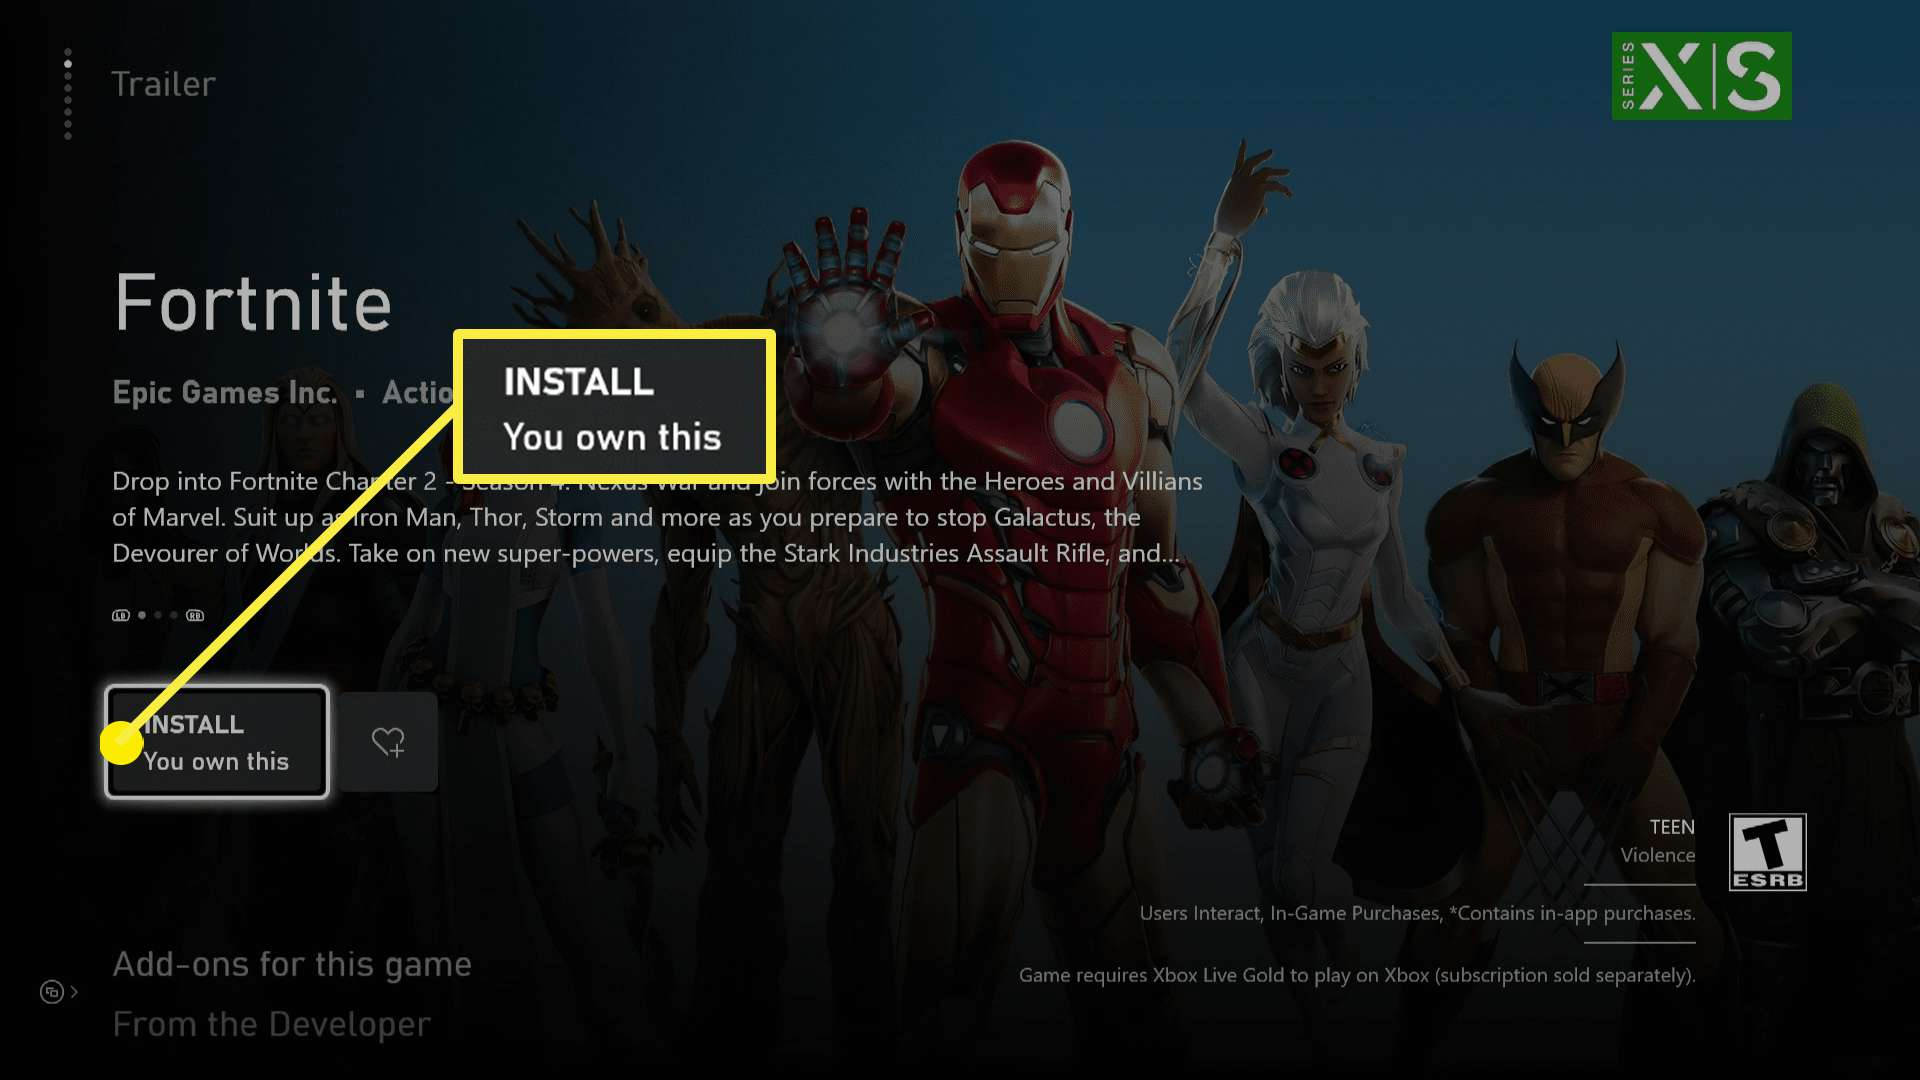 How Big Is The Fortnite Install How To Get Fortnite On Xbox Series X Or S